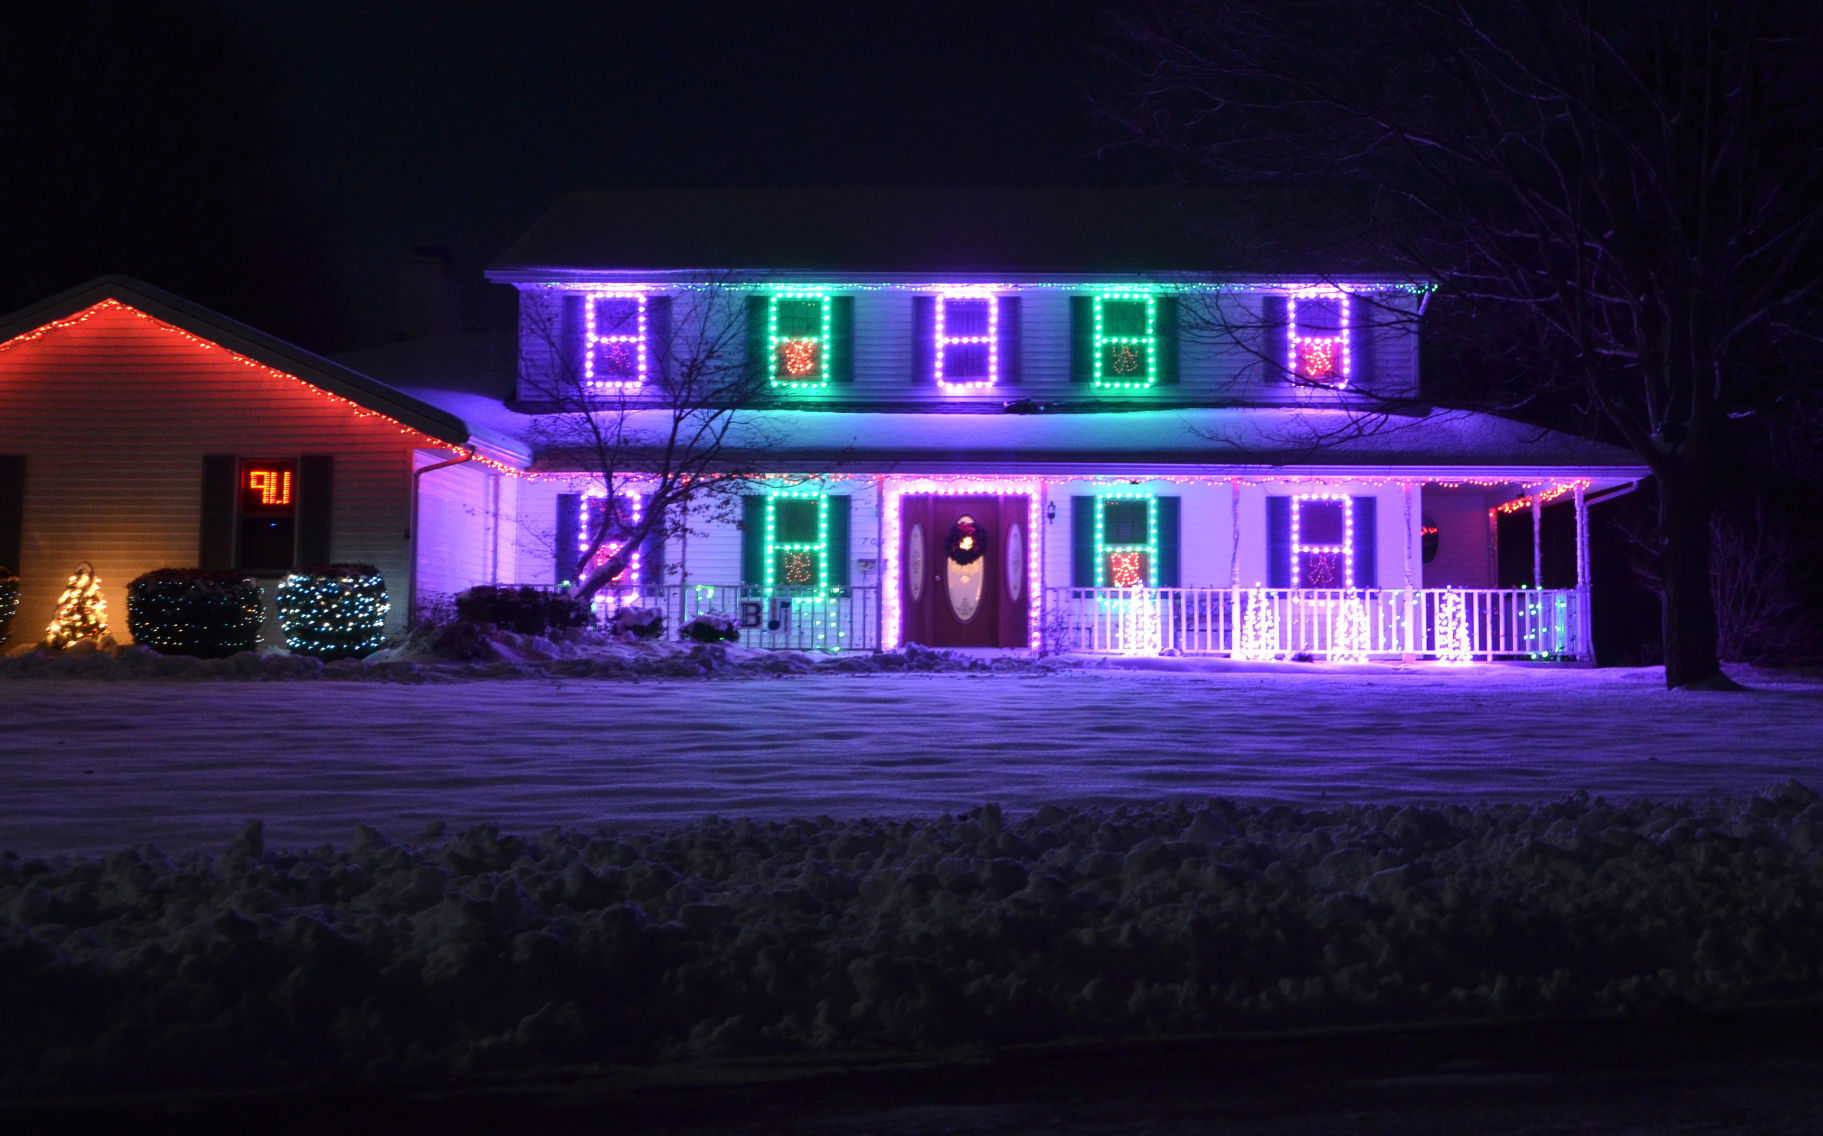 Richers put on show with Christmas lights | News | bryantimes.com